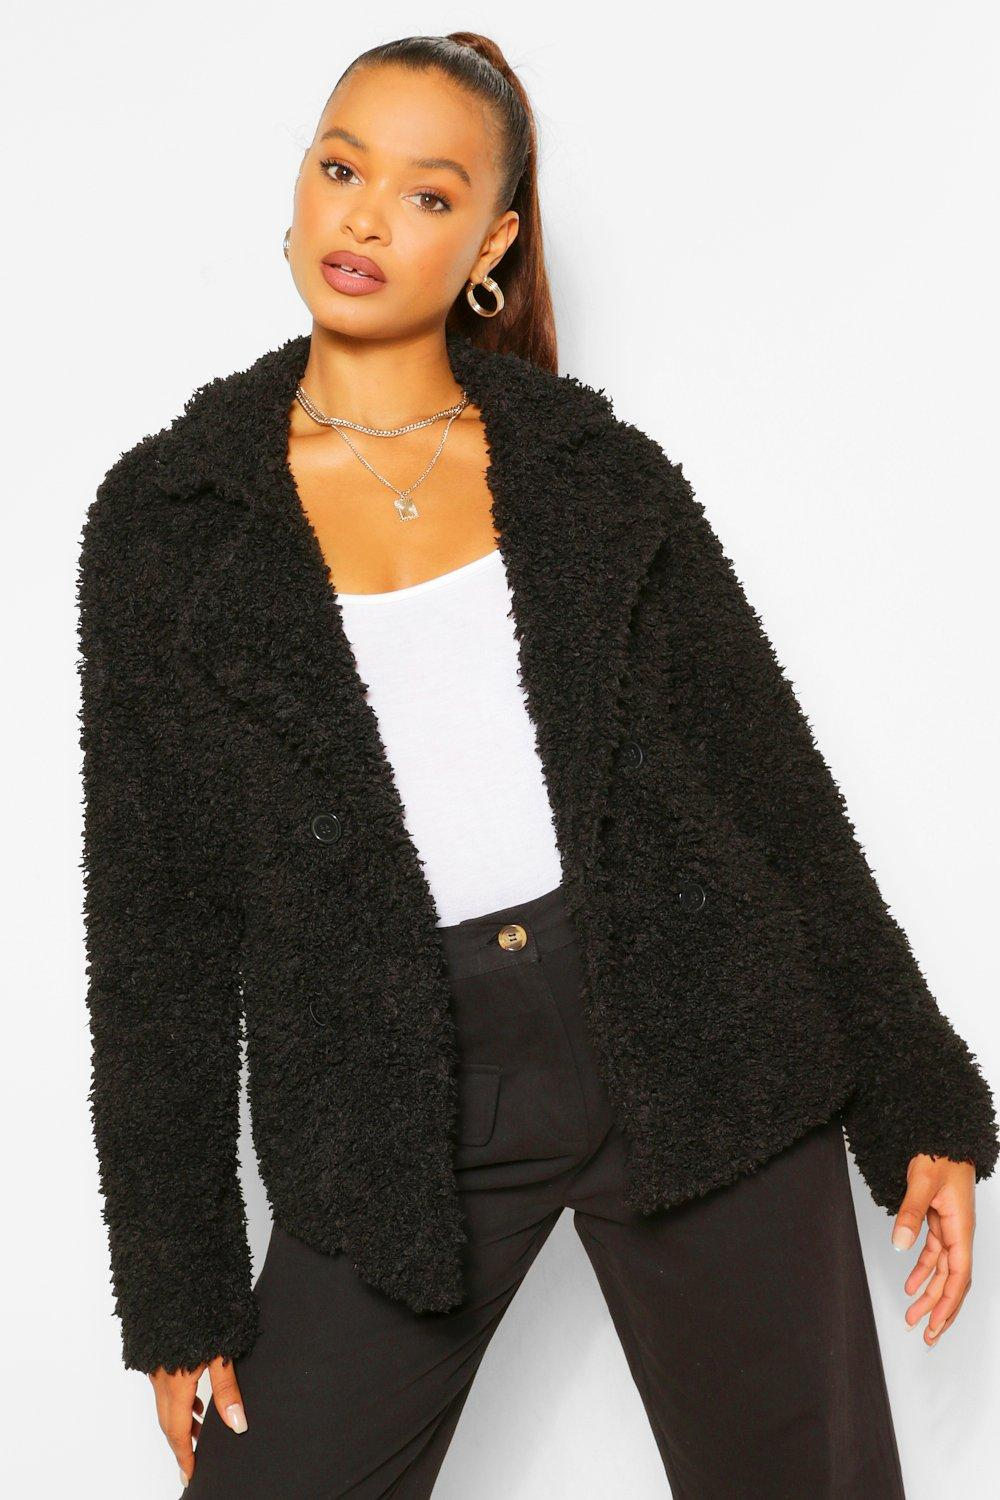 boohoo Womens Double Breasted Faux Fur Teddy Coat - Black - 16, Black